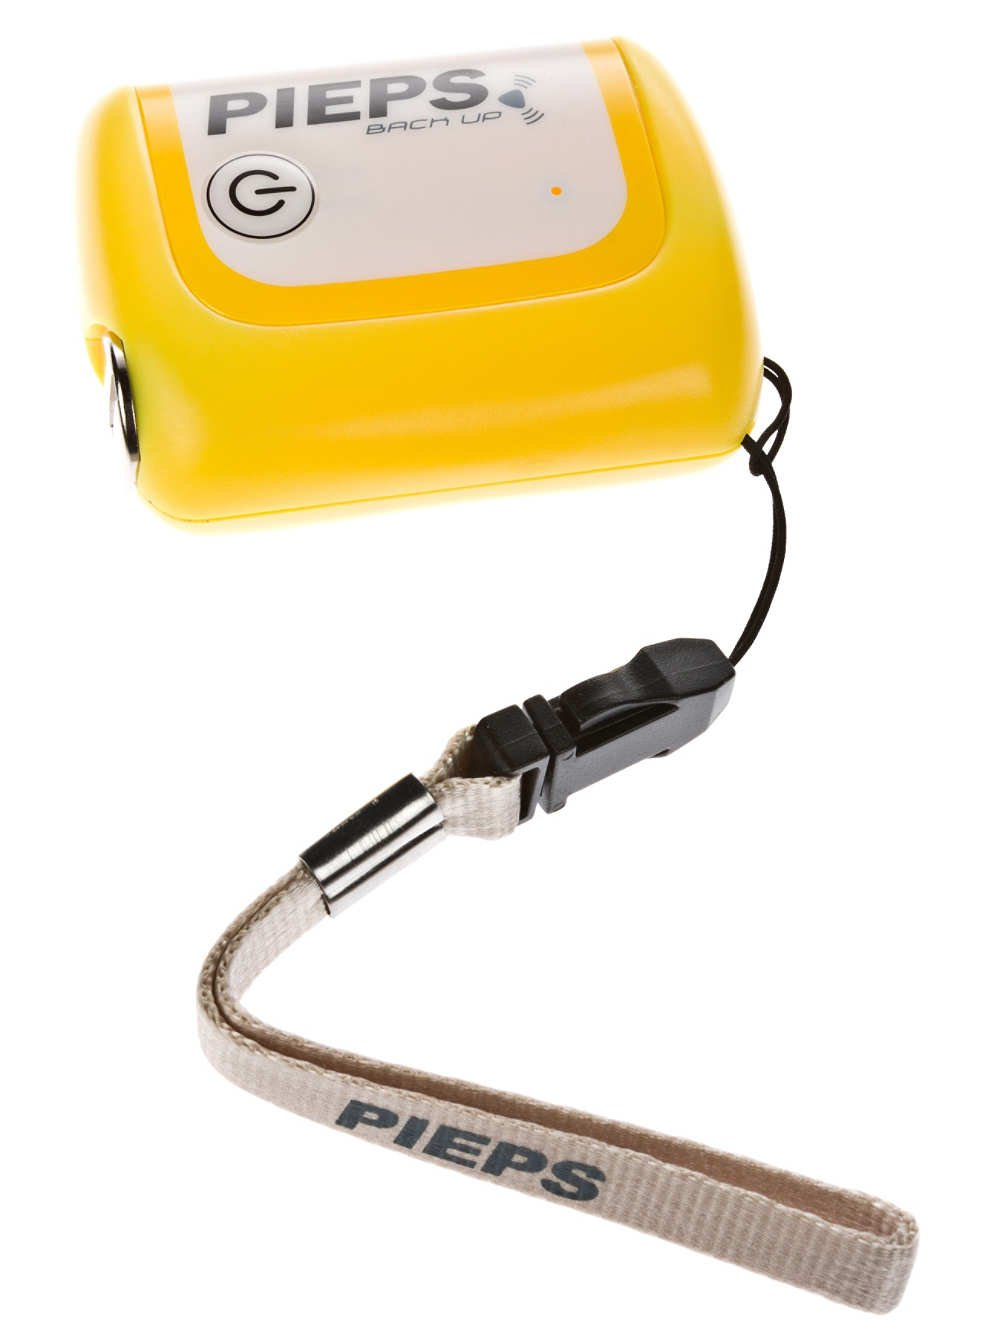 Pieps Avalanche Transmitter, Backup, PP1098790000ALL1 PIEP7 #Pieps